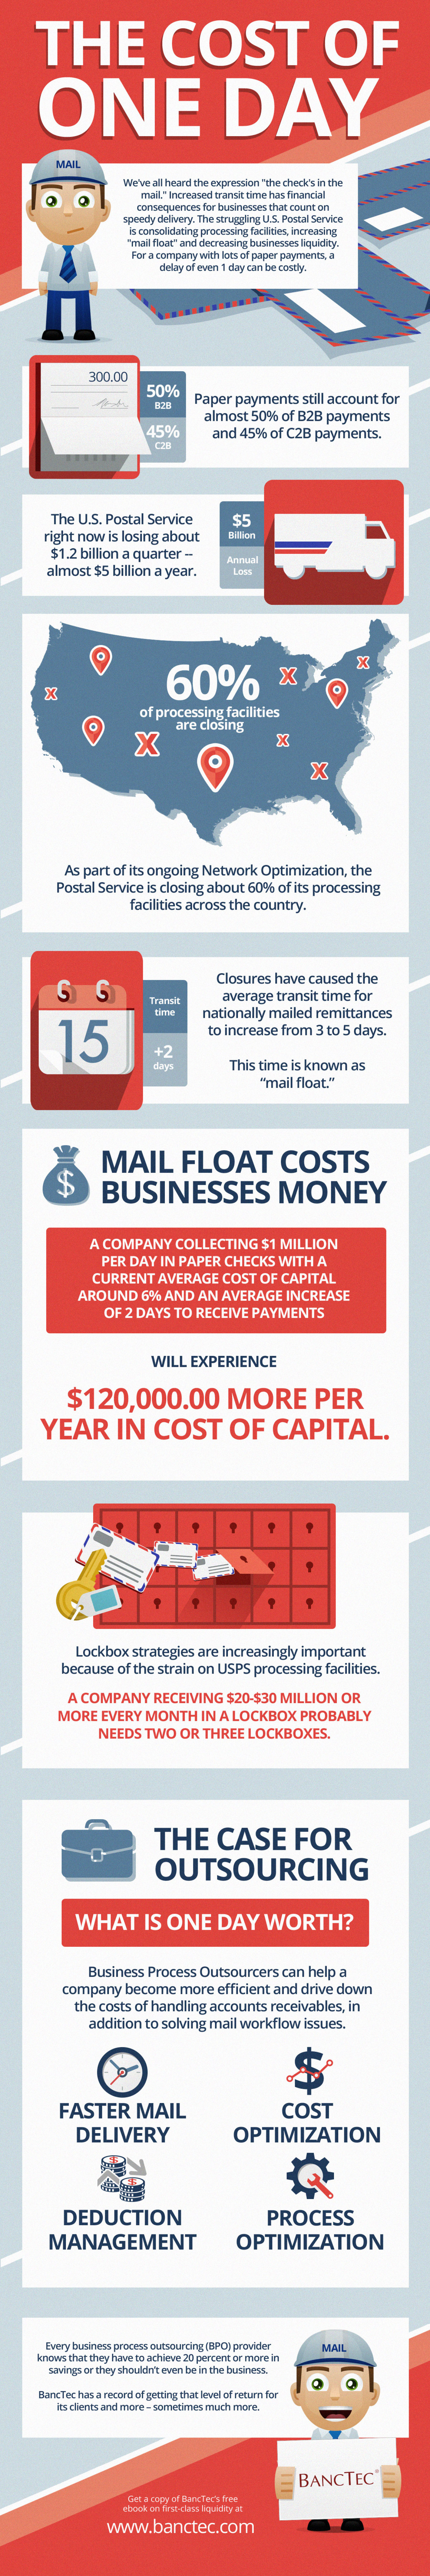 The USPS and the Cost of One Day Infographic